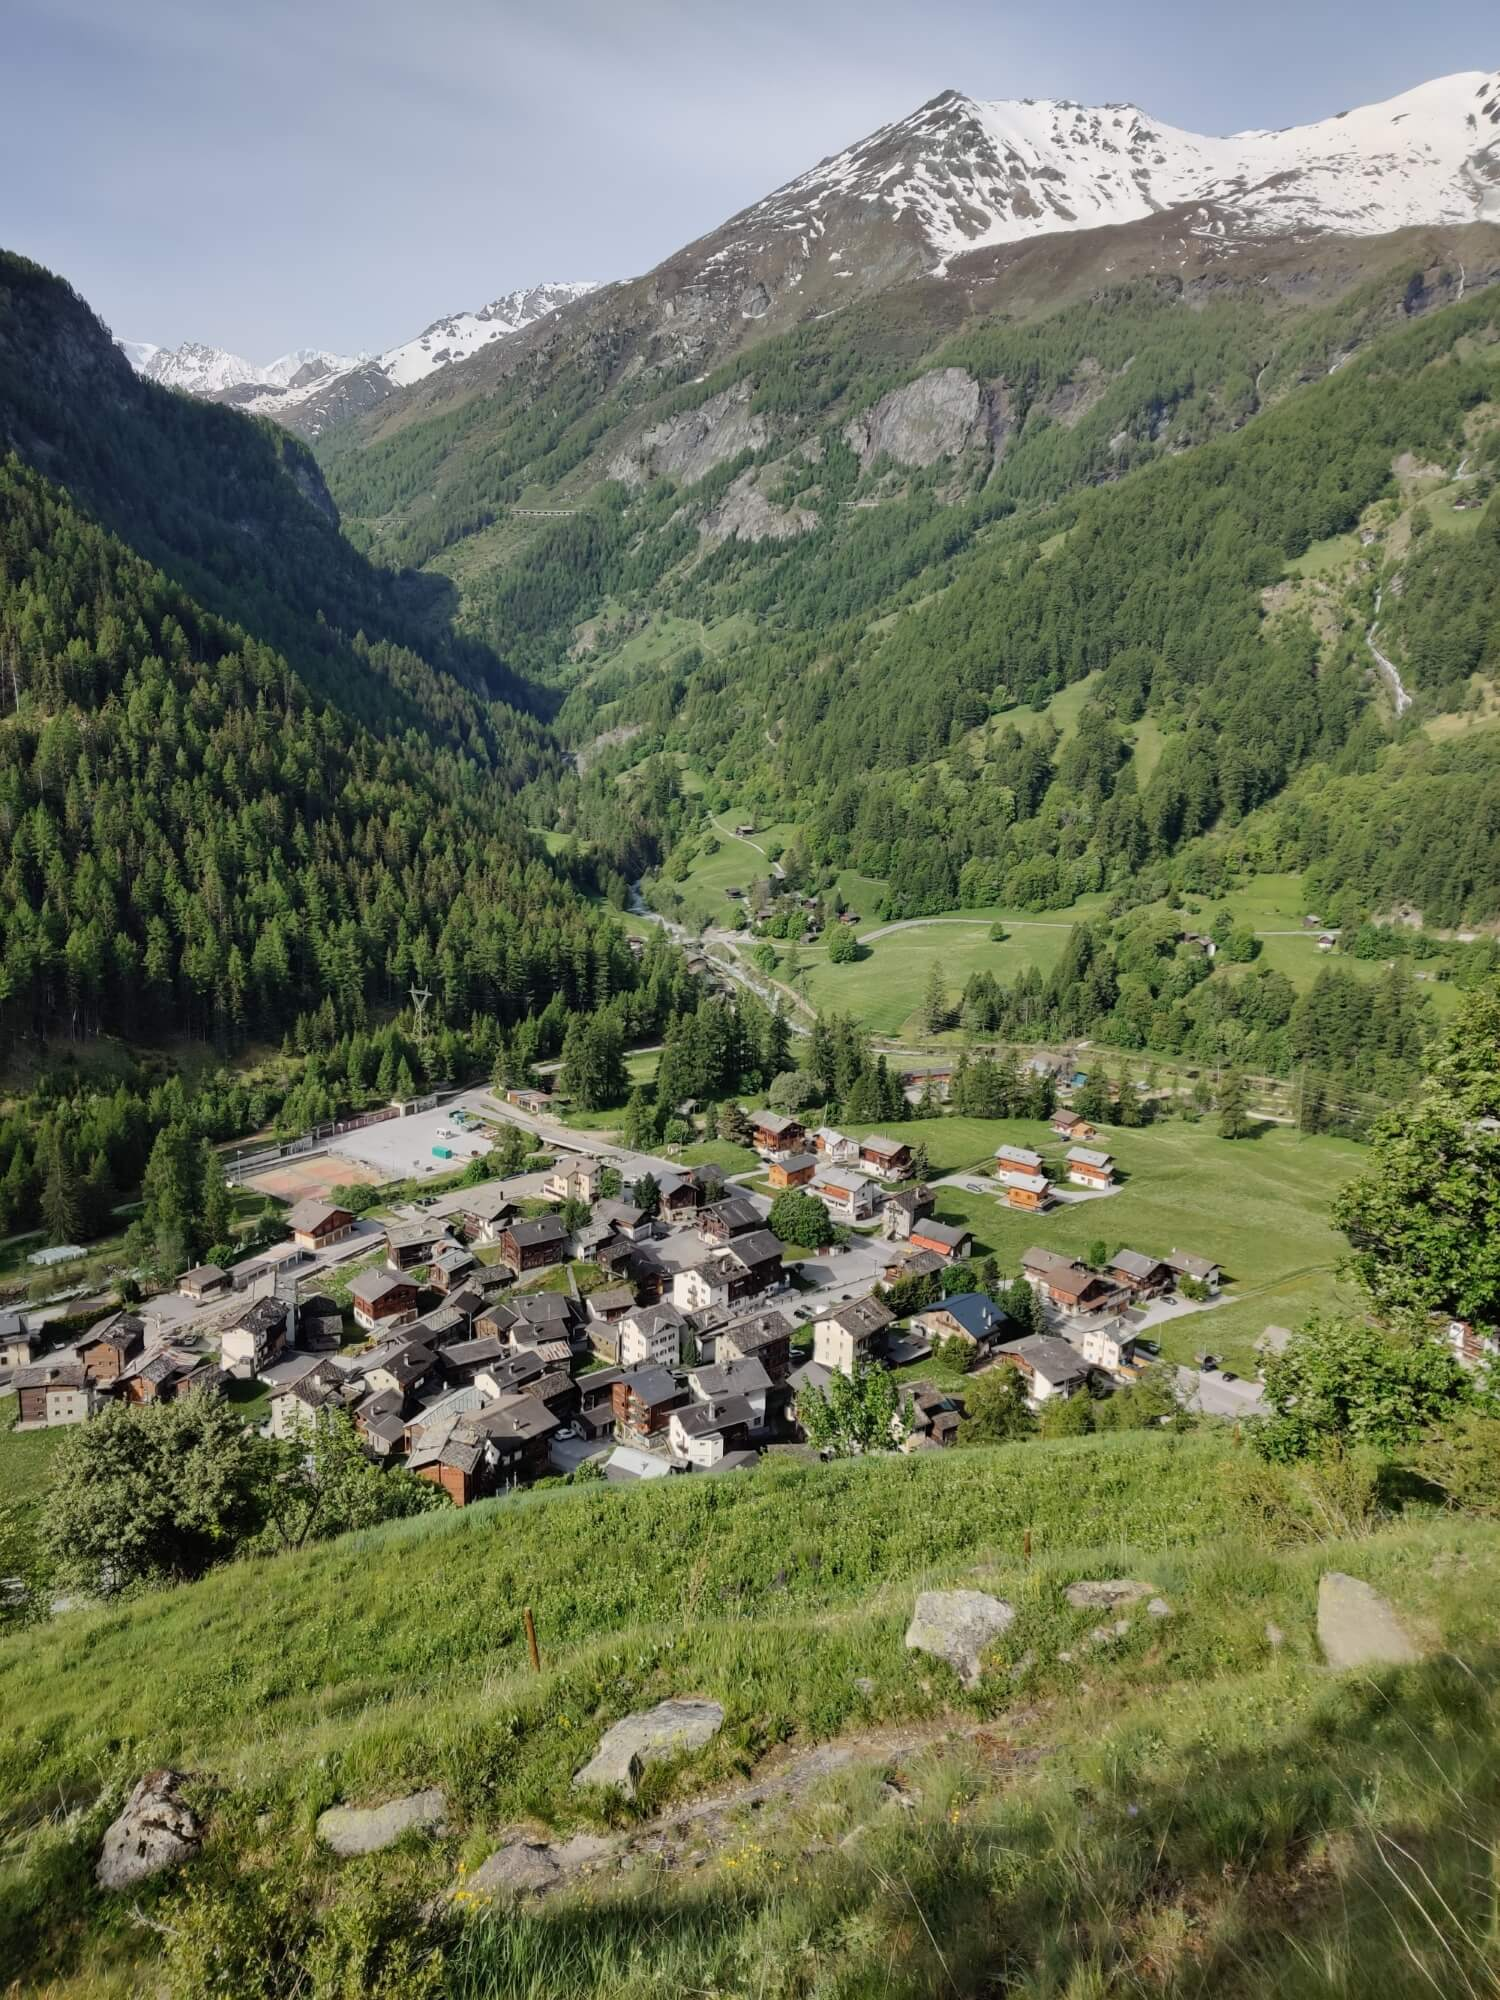 Les Hauderes:  Enjoy the snow free hiking trails from Arolla to La Sage